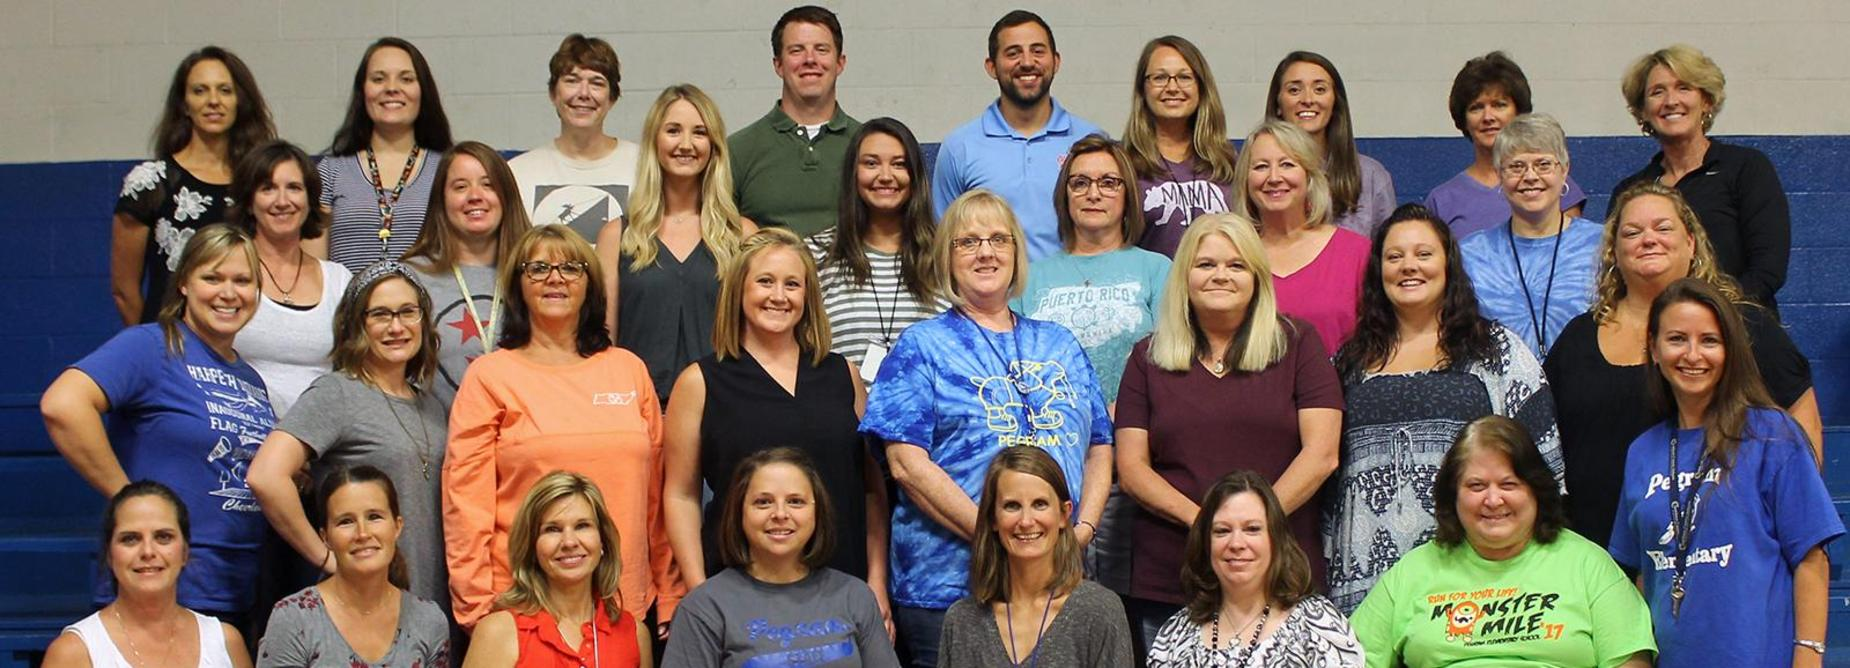 The 2018-2019 Pegram Elementary School staff.